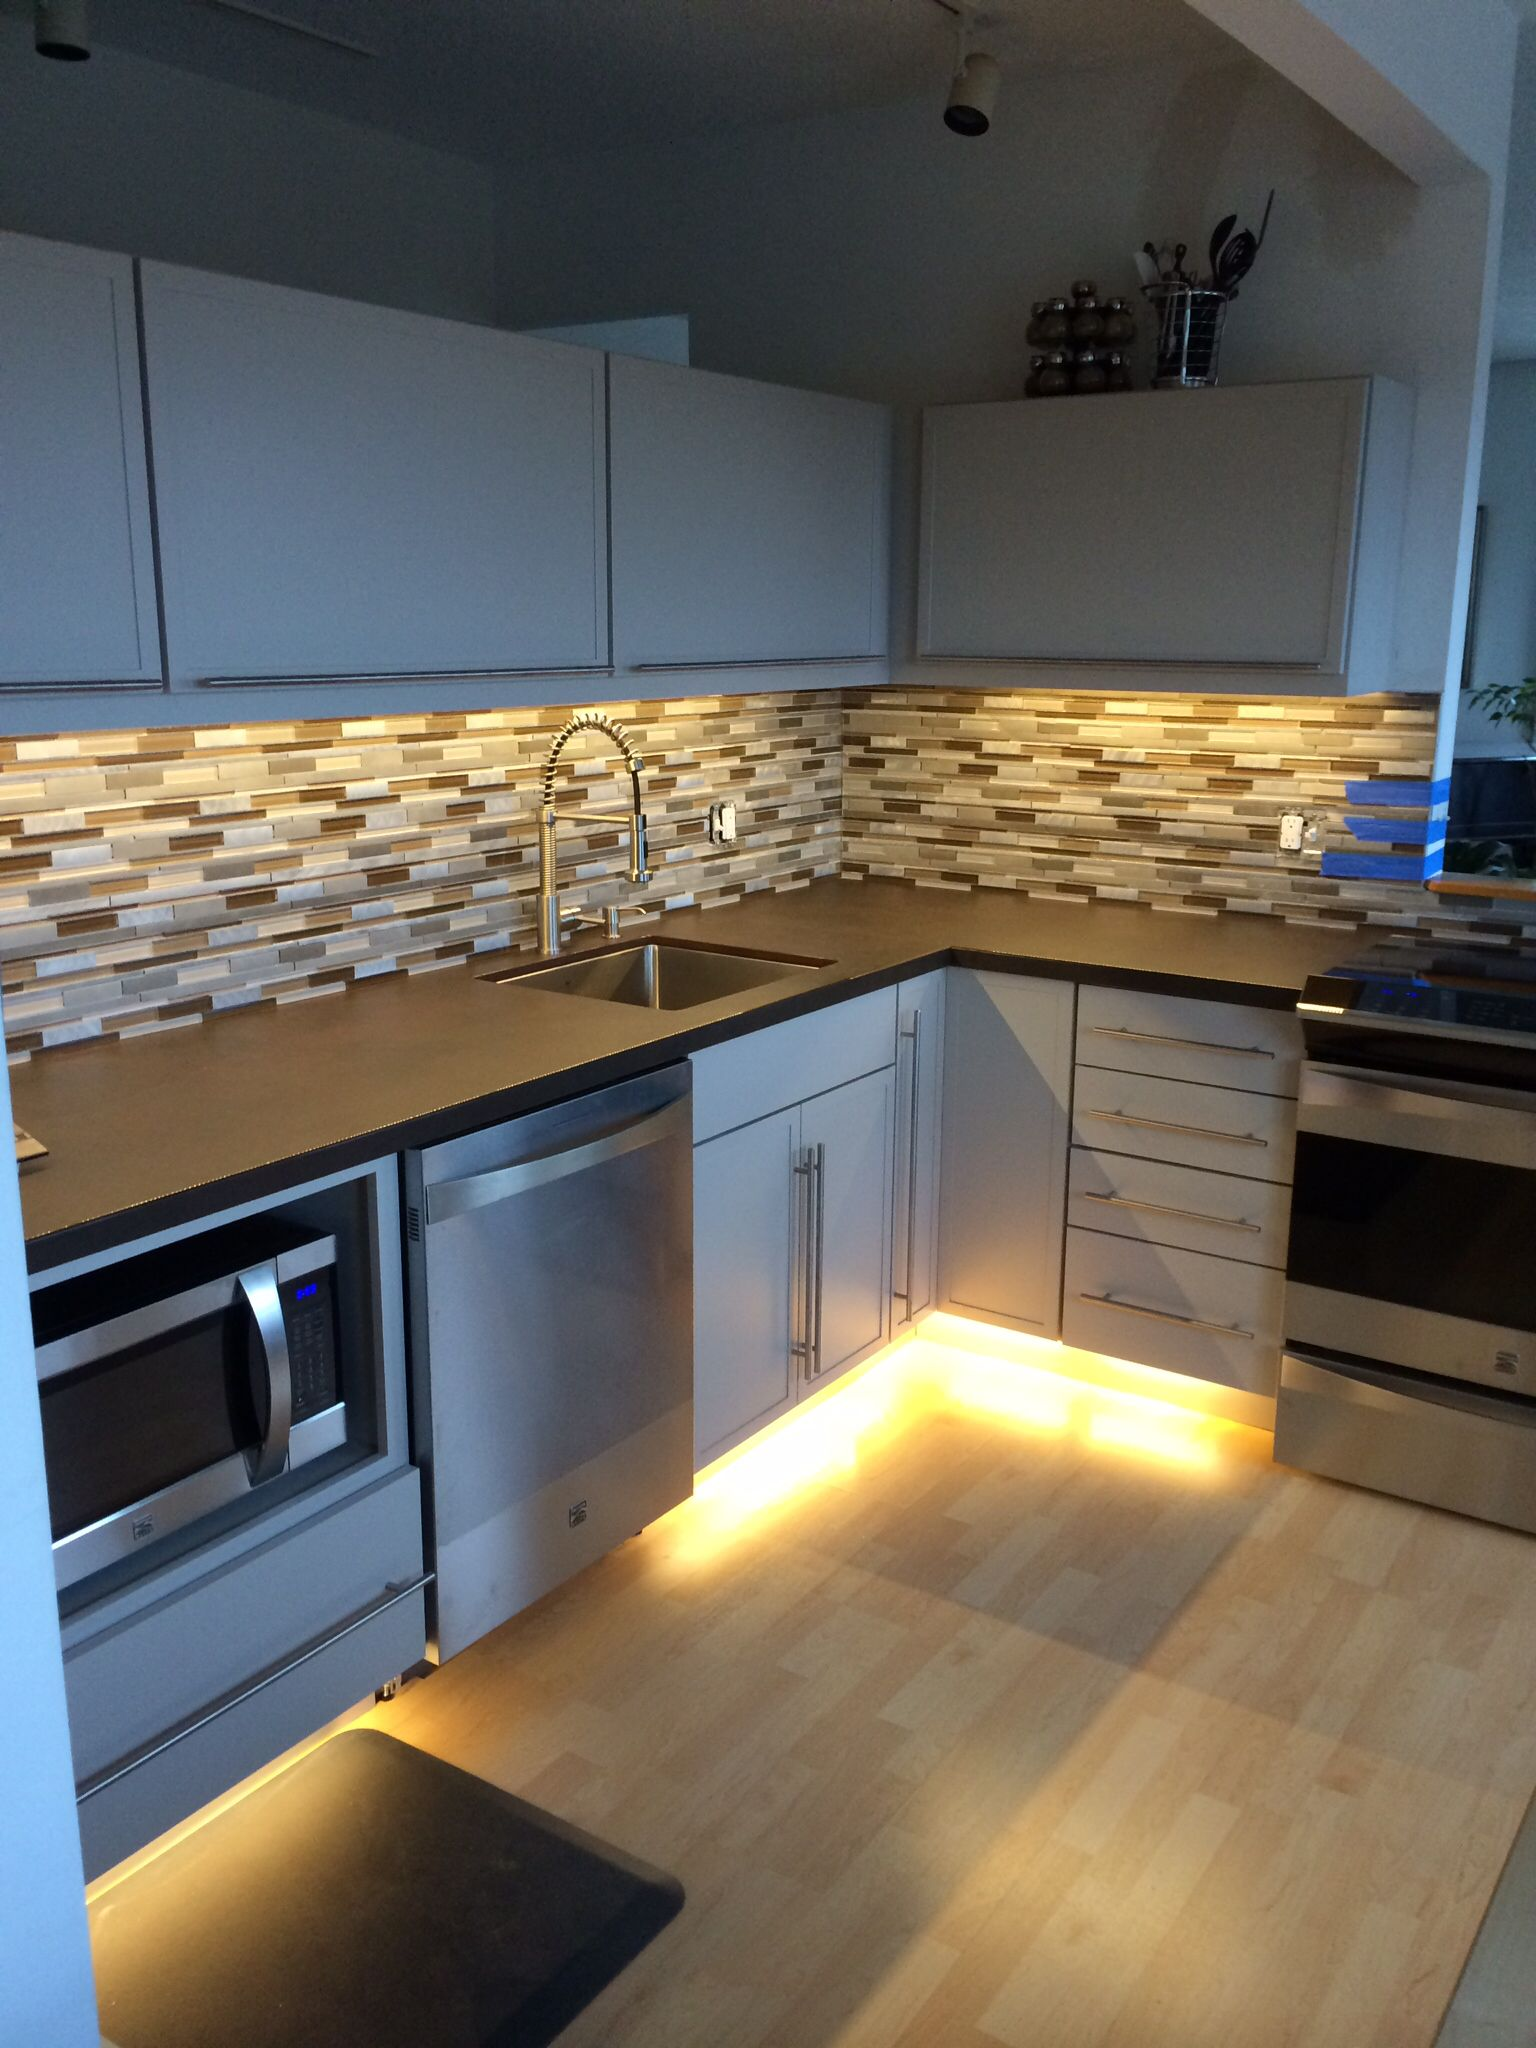 Martha Stewart cabinets with under cabinet lighting and Dekton